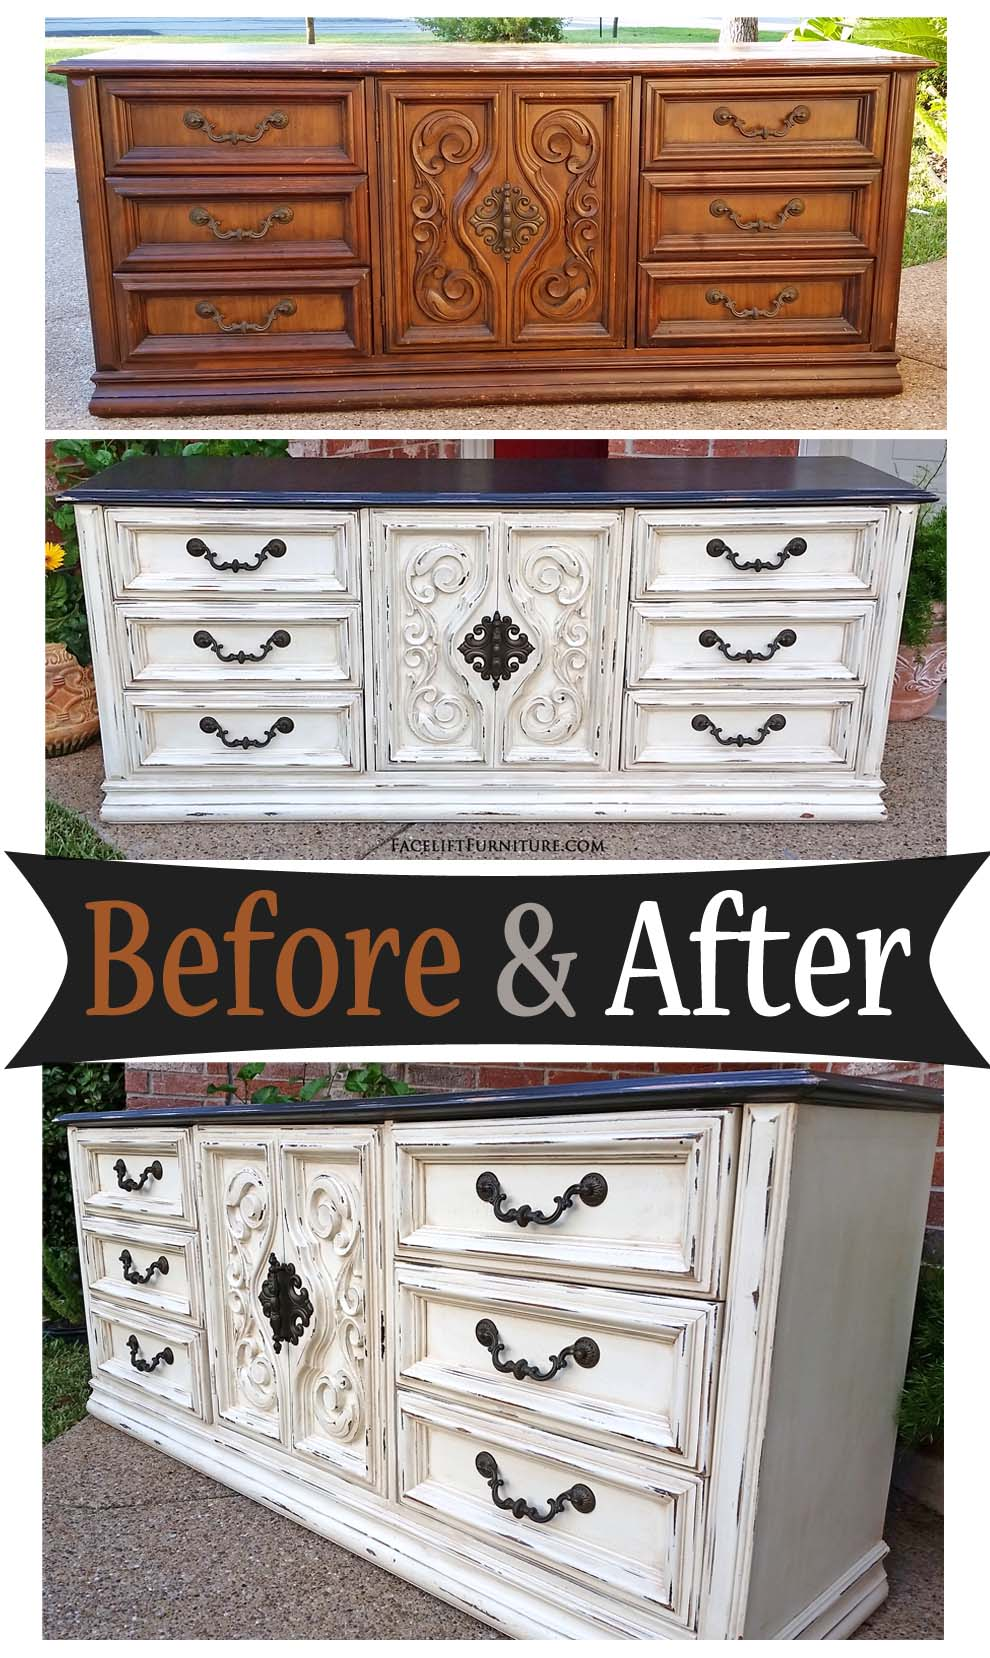 Merveilleux This Big Old Vintage Dresser Was Given A New Life With Paint, Glaze And  Distressing.